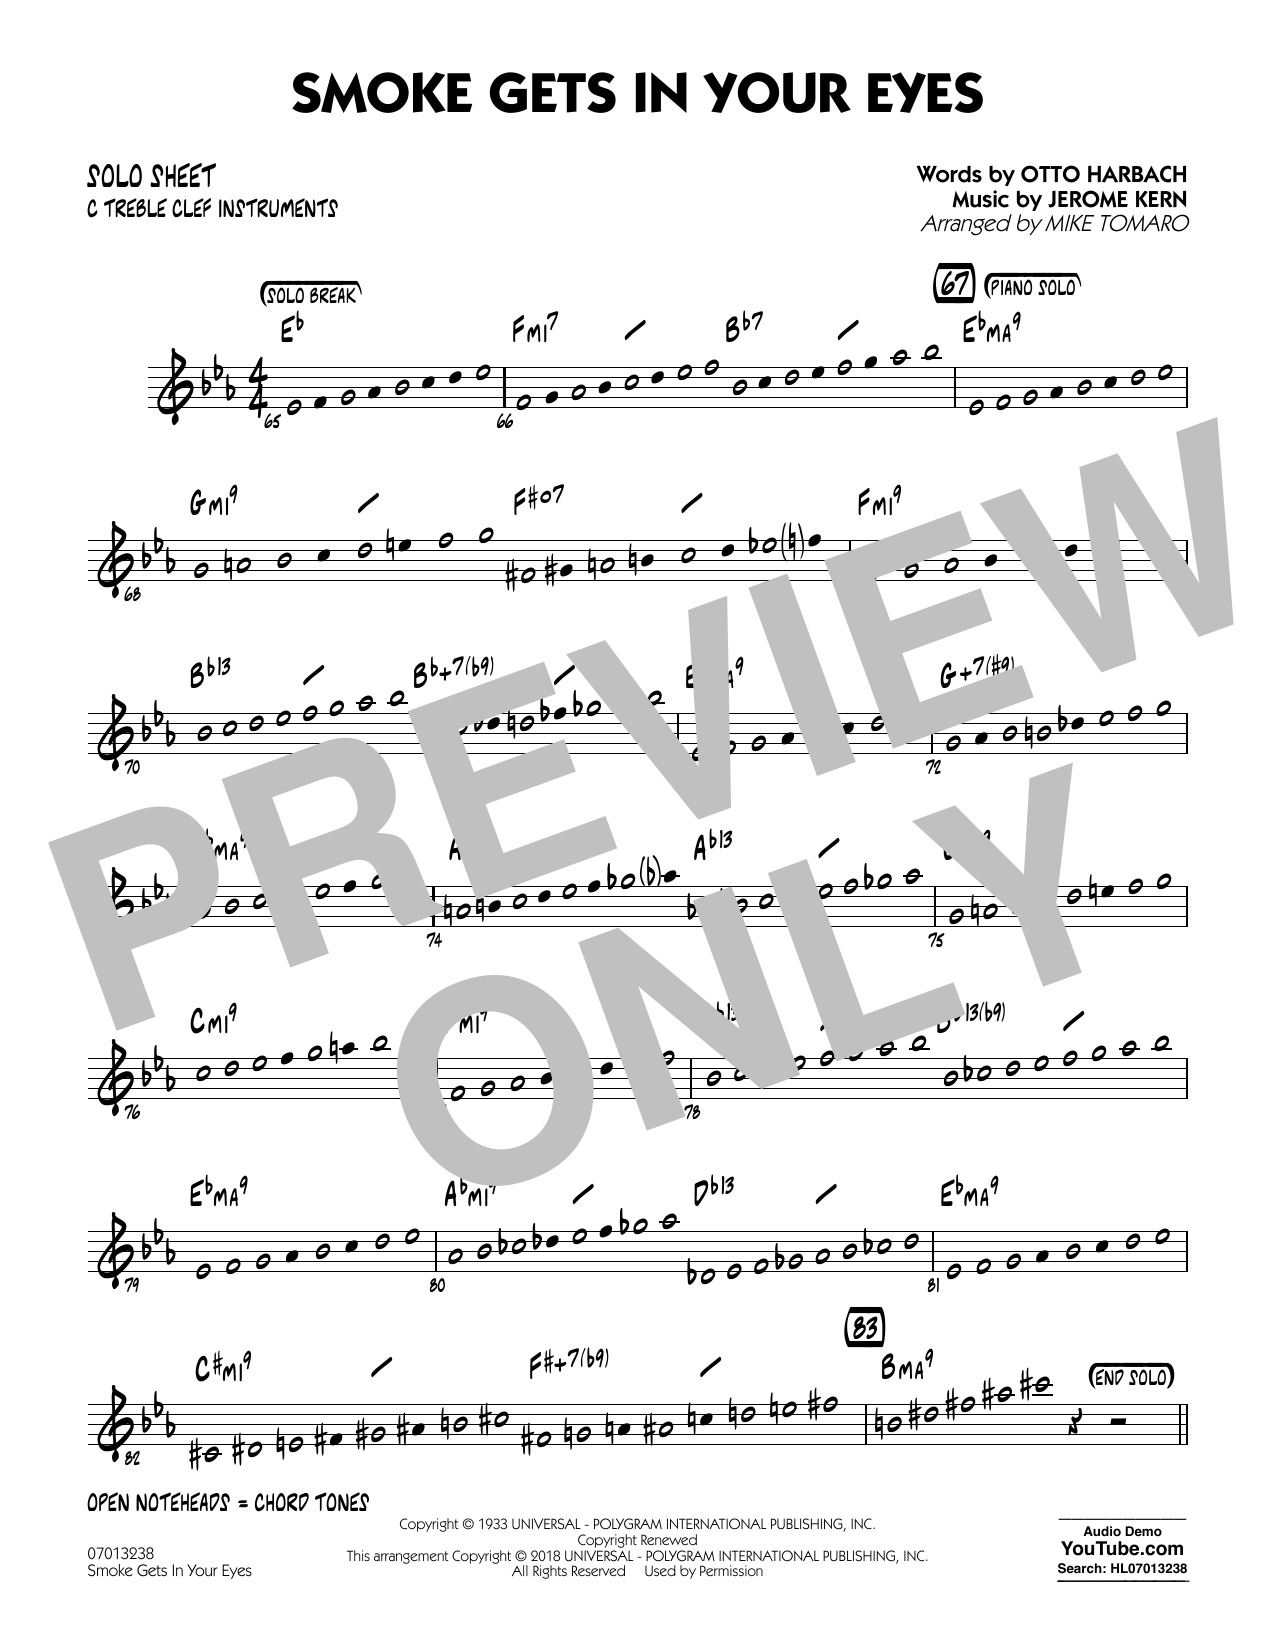 The Platters Smoke Gets In Your Eyes (arr. Mike Tomaro) - C Solo Sheet sheet music notes and chords. Download Printable PDF.